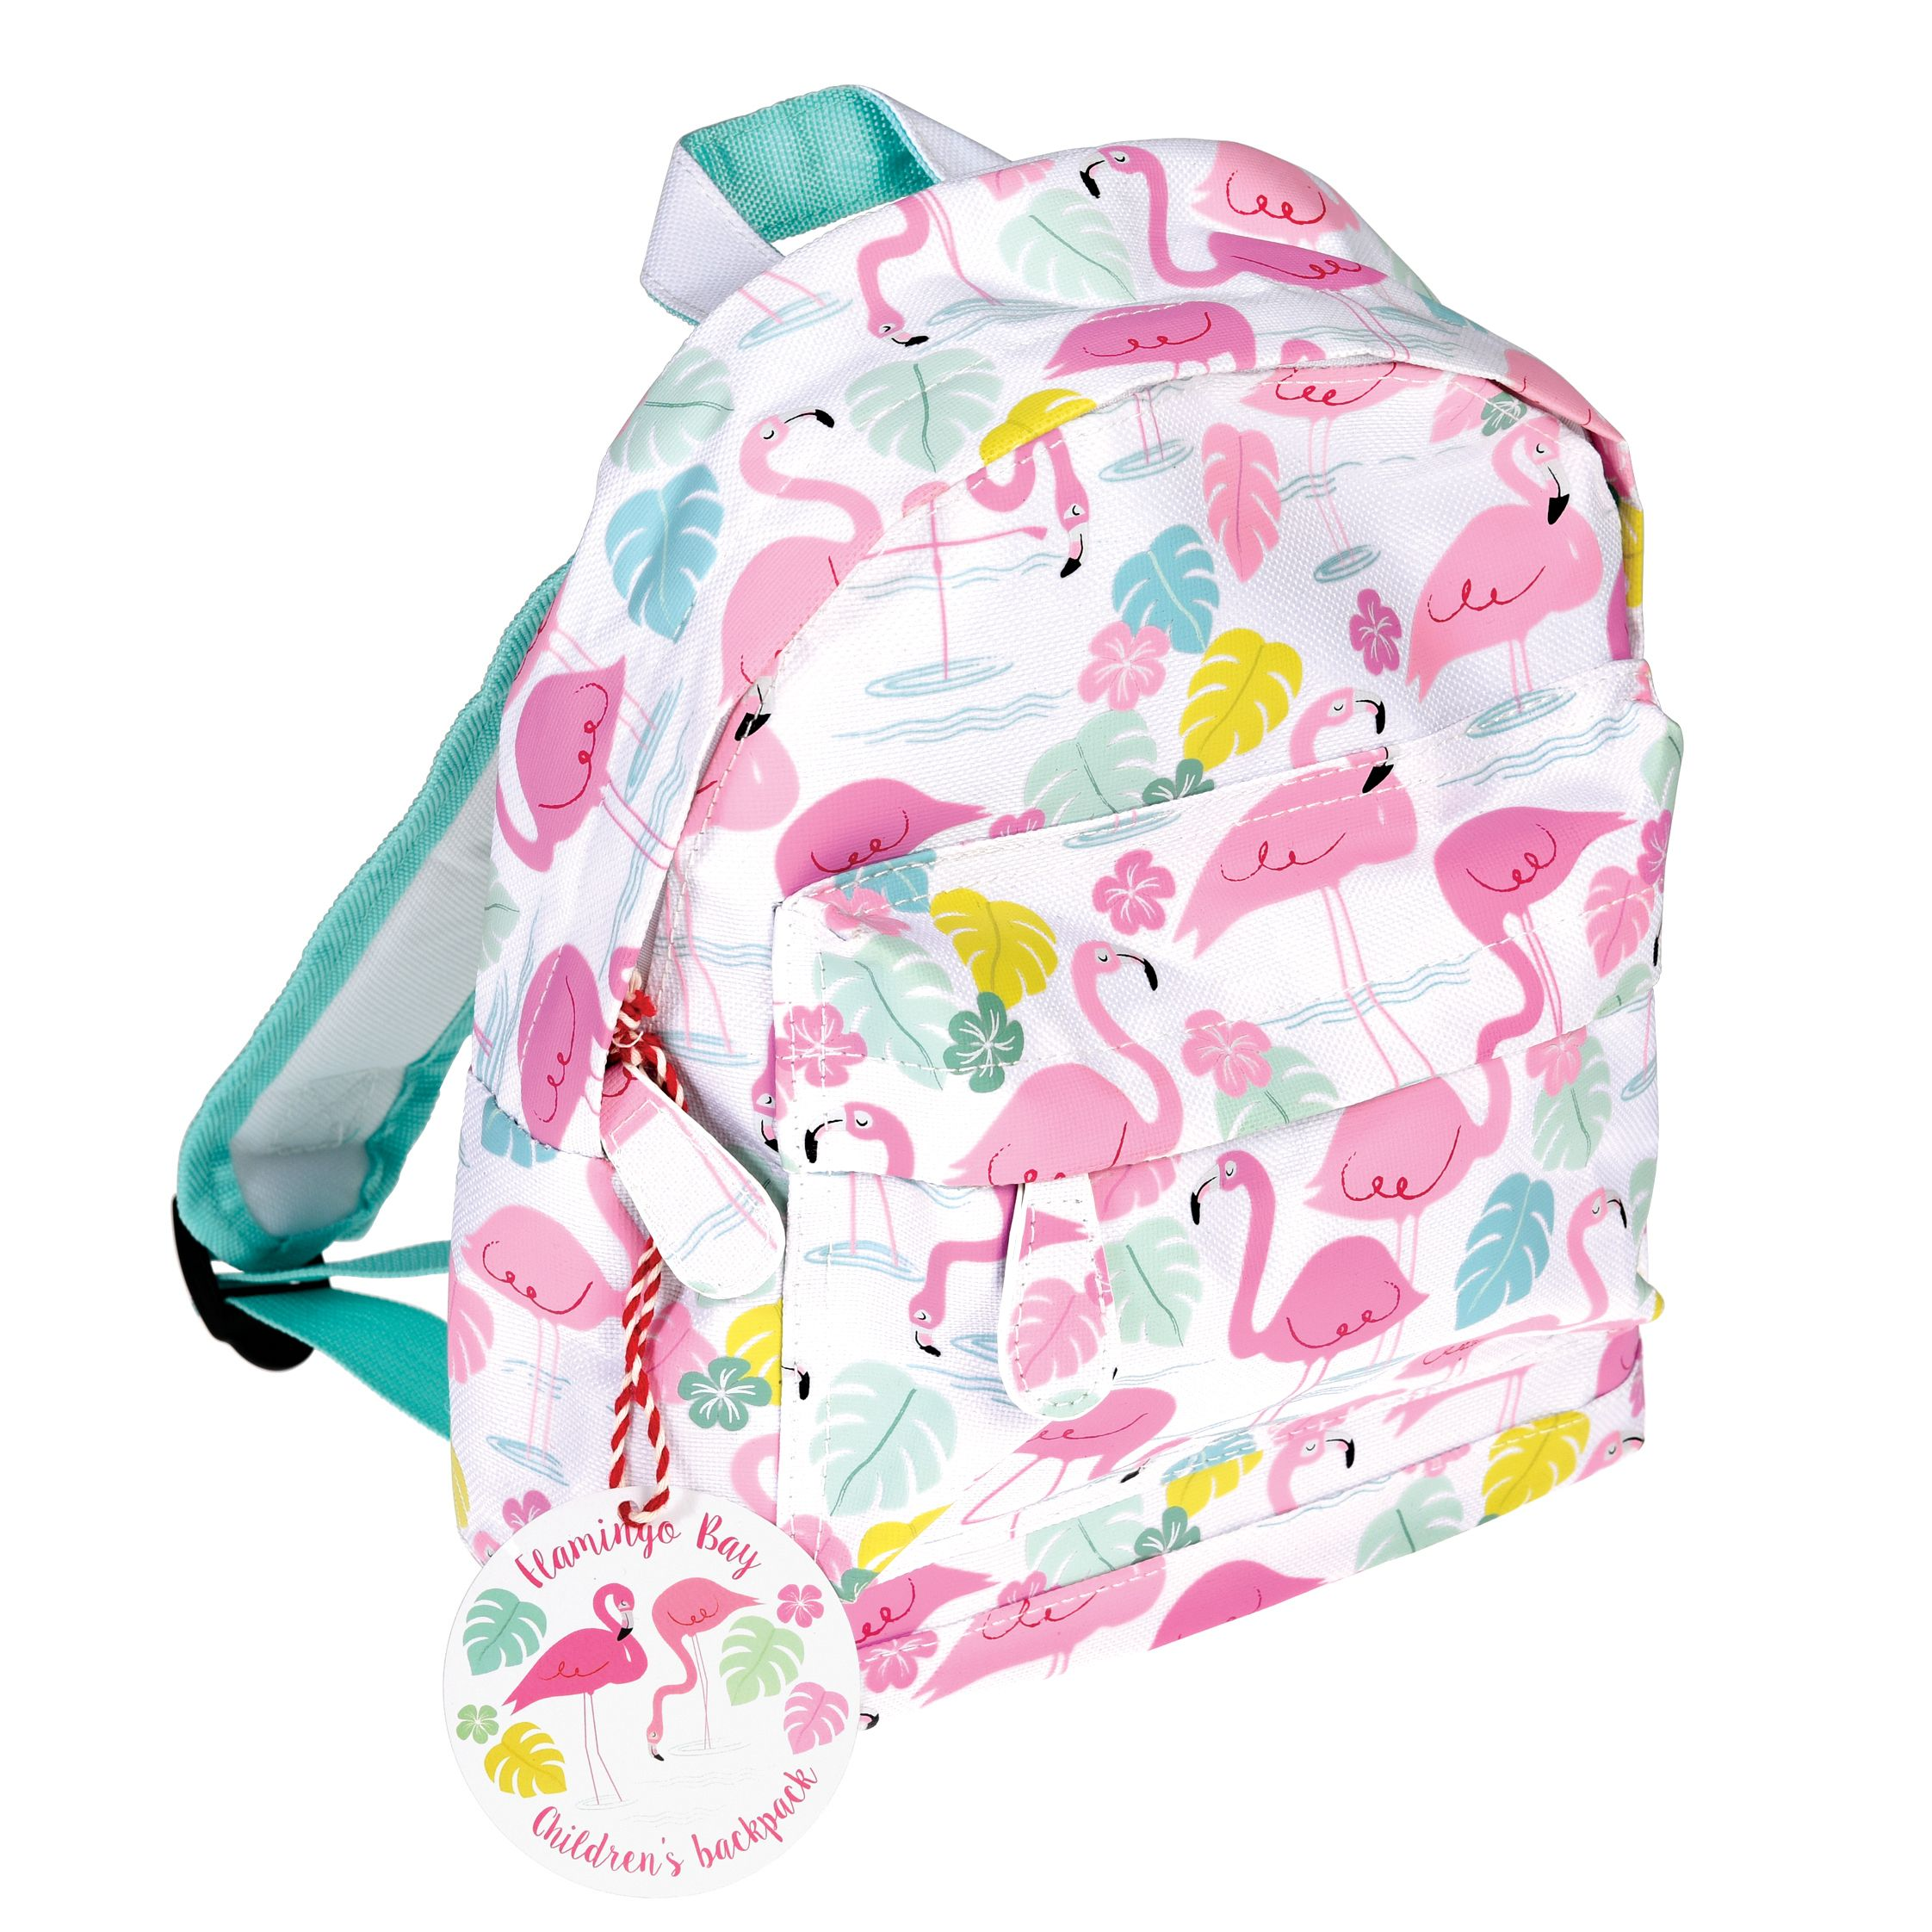 Personalised Kids Backpack Any Name Flamingo Girl Childrens Back To School Bag 3